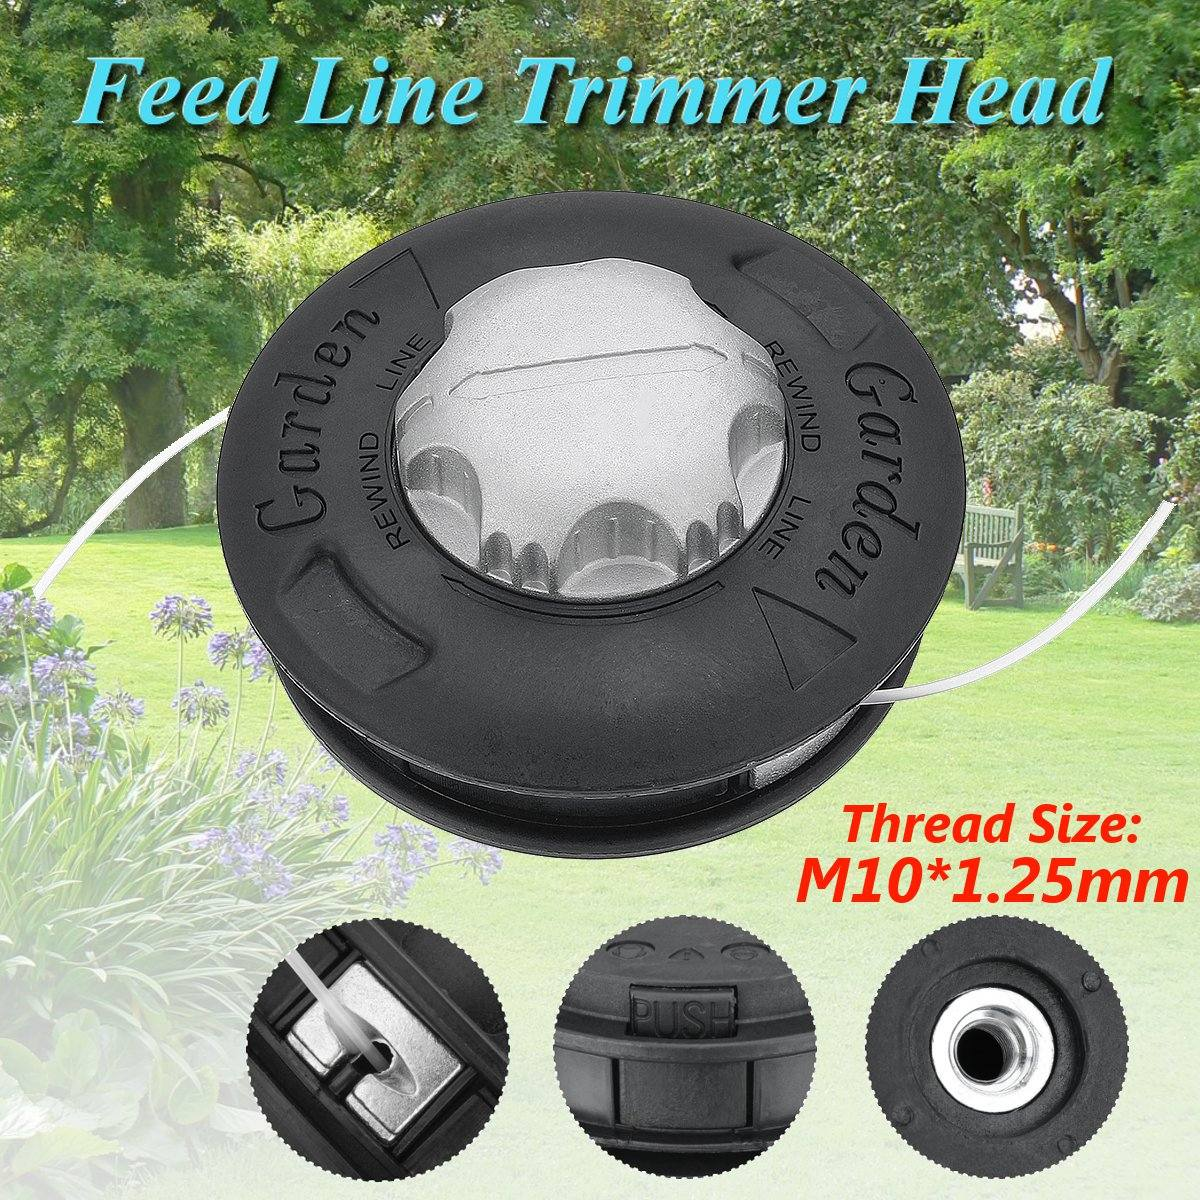 M10 2 Lines Cutter Head Aluminum Nylon Brush Mower  Bump Spool Grass Trimmer Thread Line String Saw Grass Brush Mower Universal